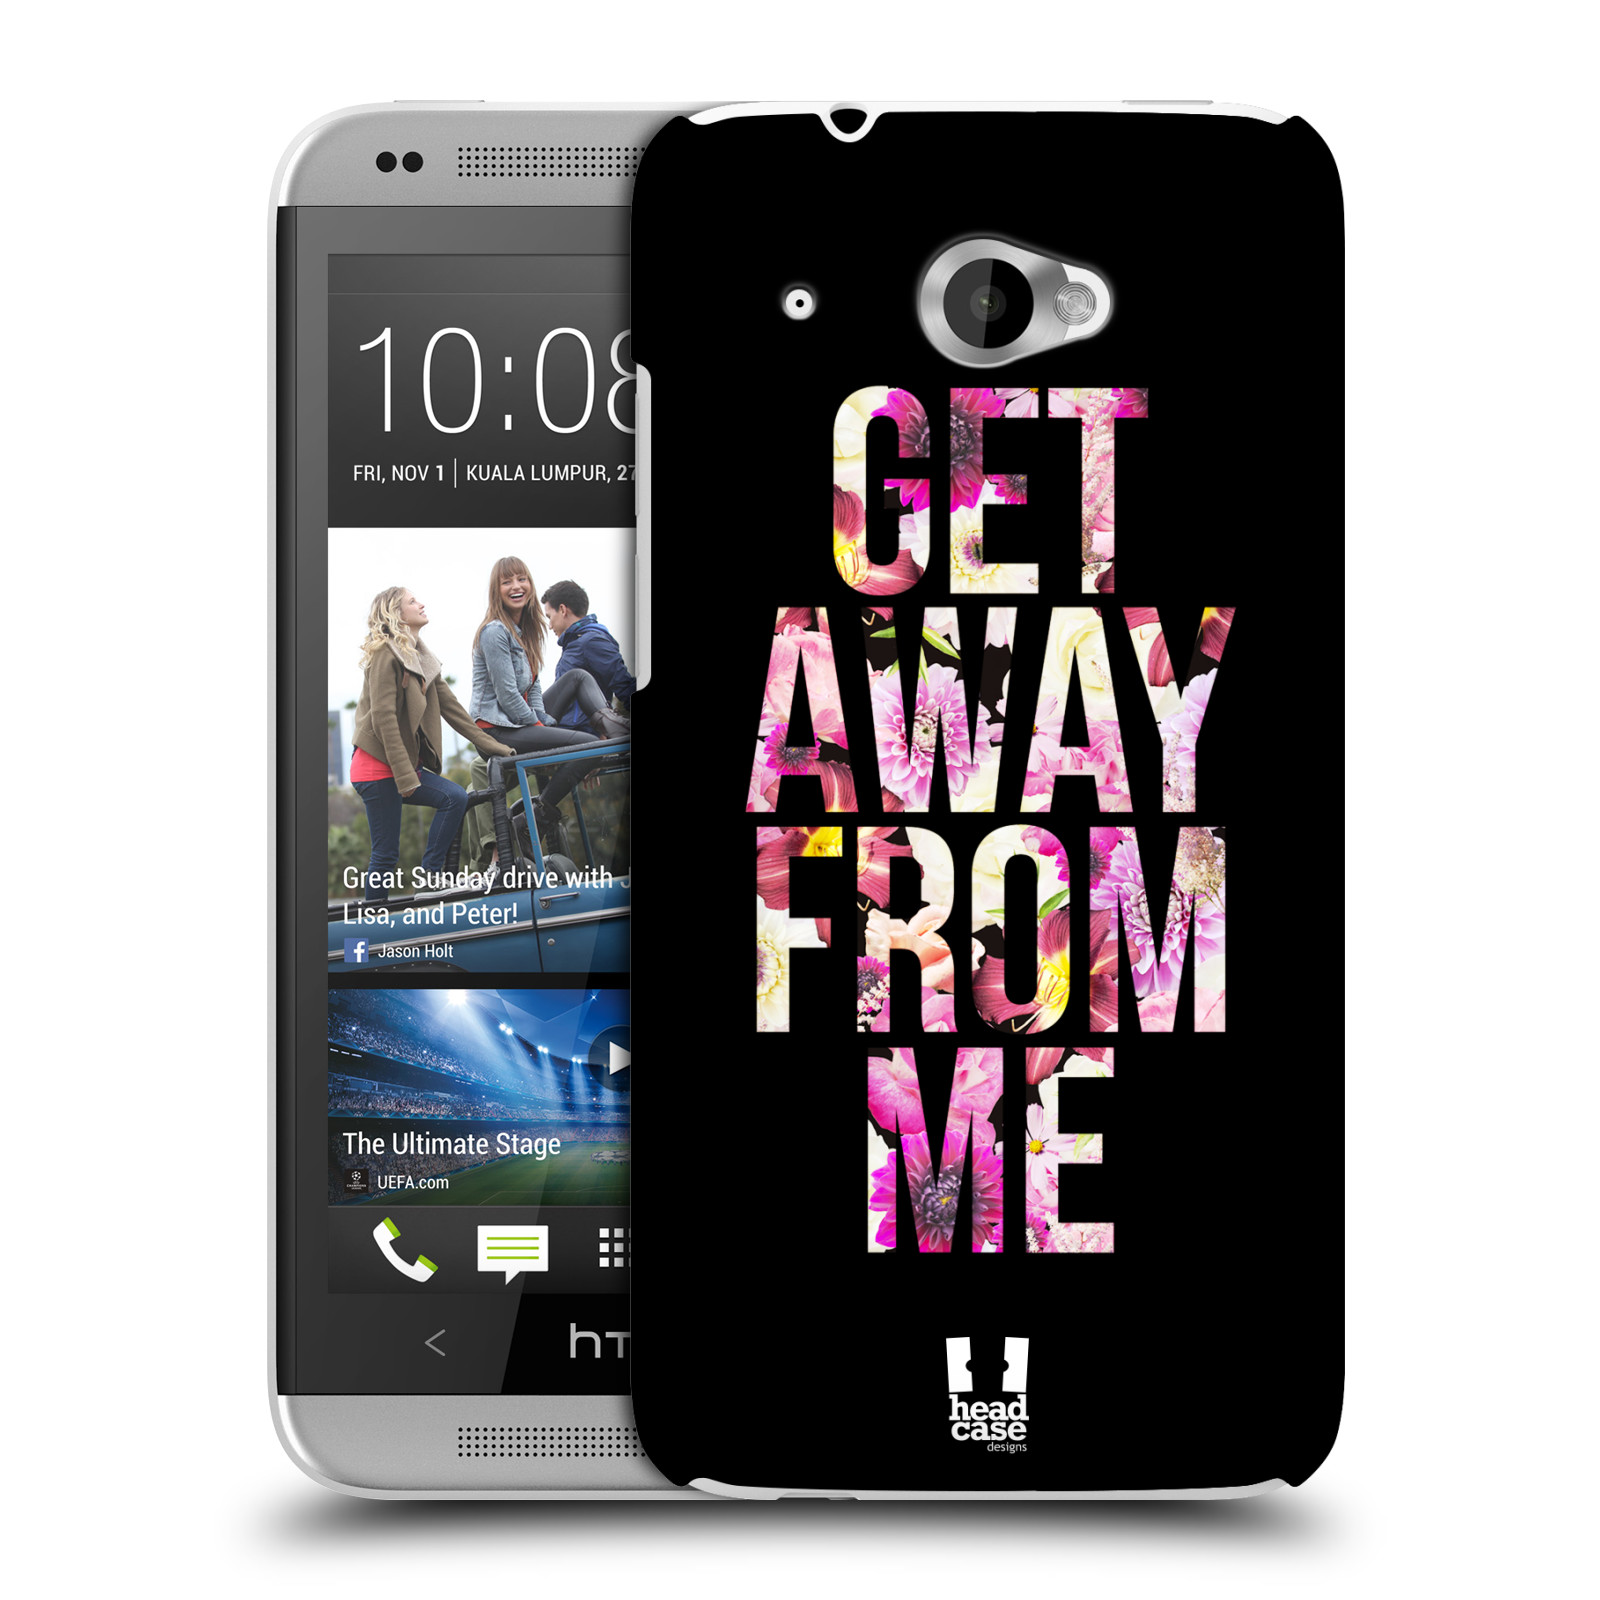 HEAD CASE DESIGNS TREND MIX CASE COVER FOR HTC DESIRE 601 LTE